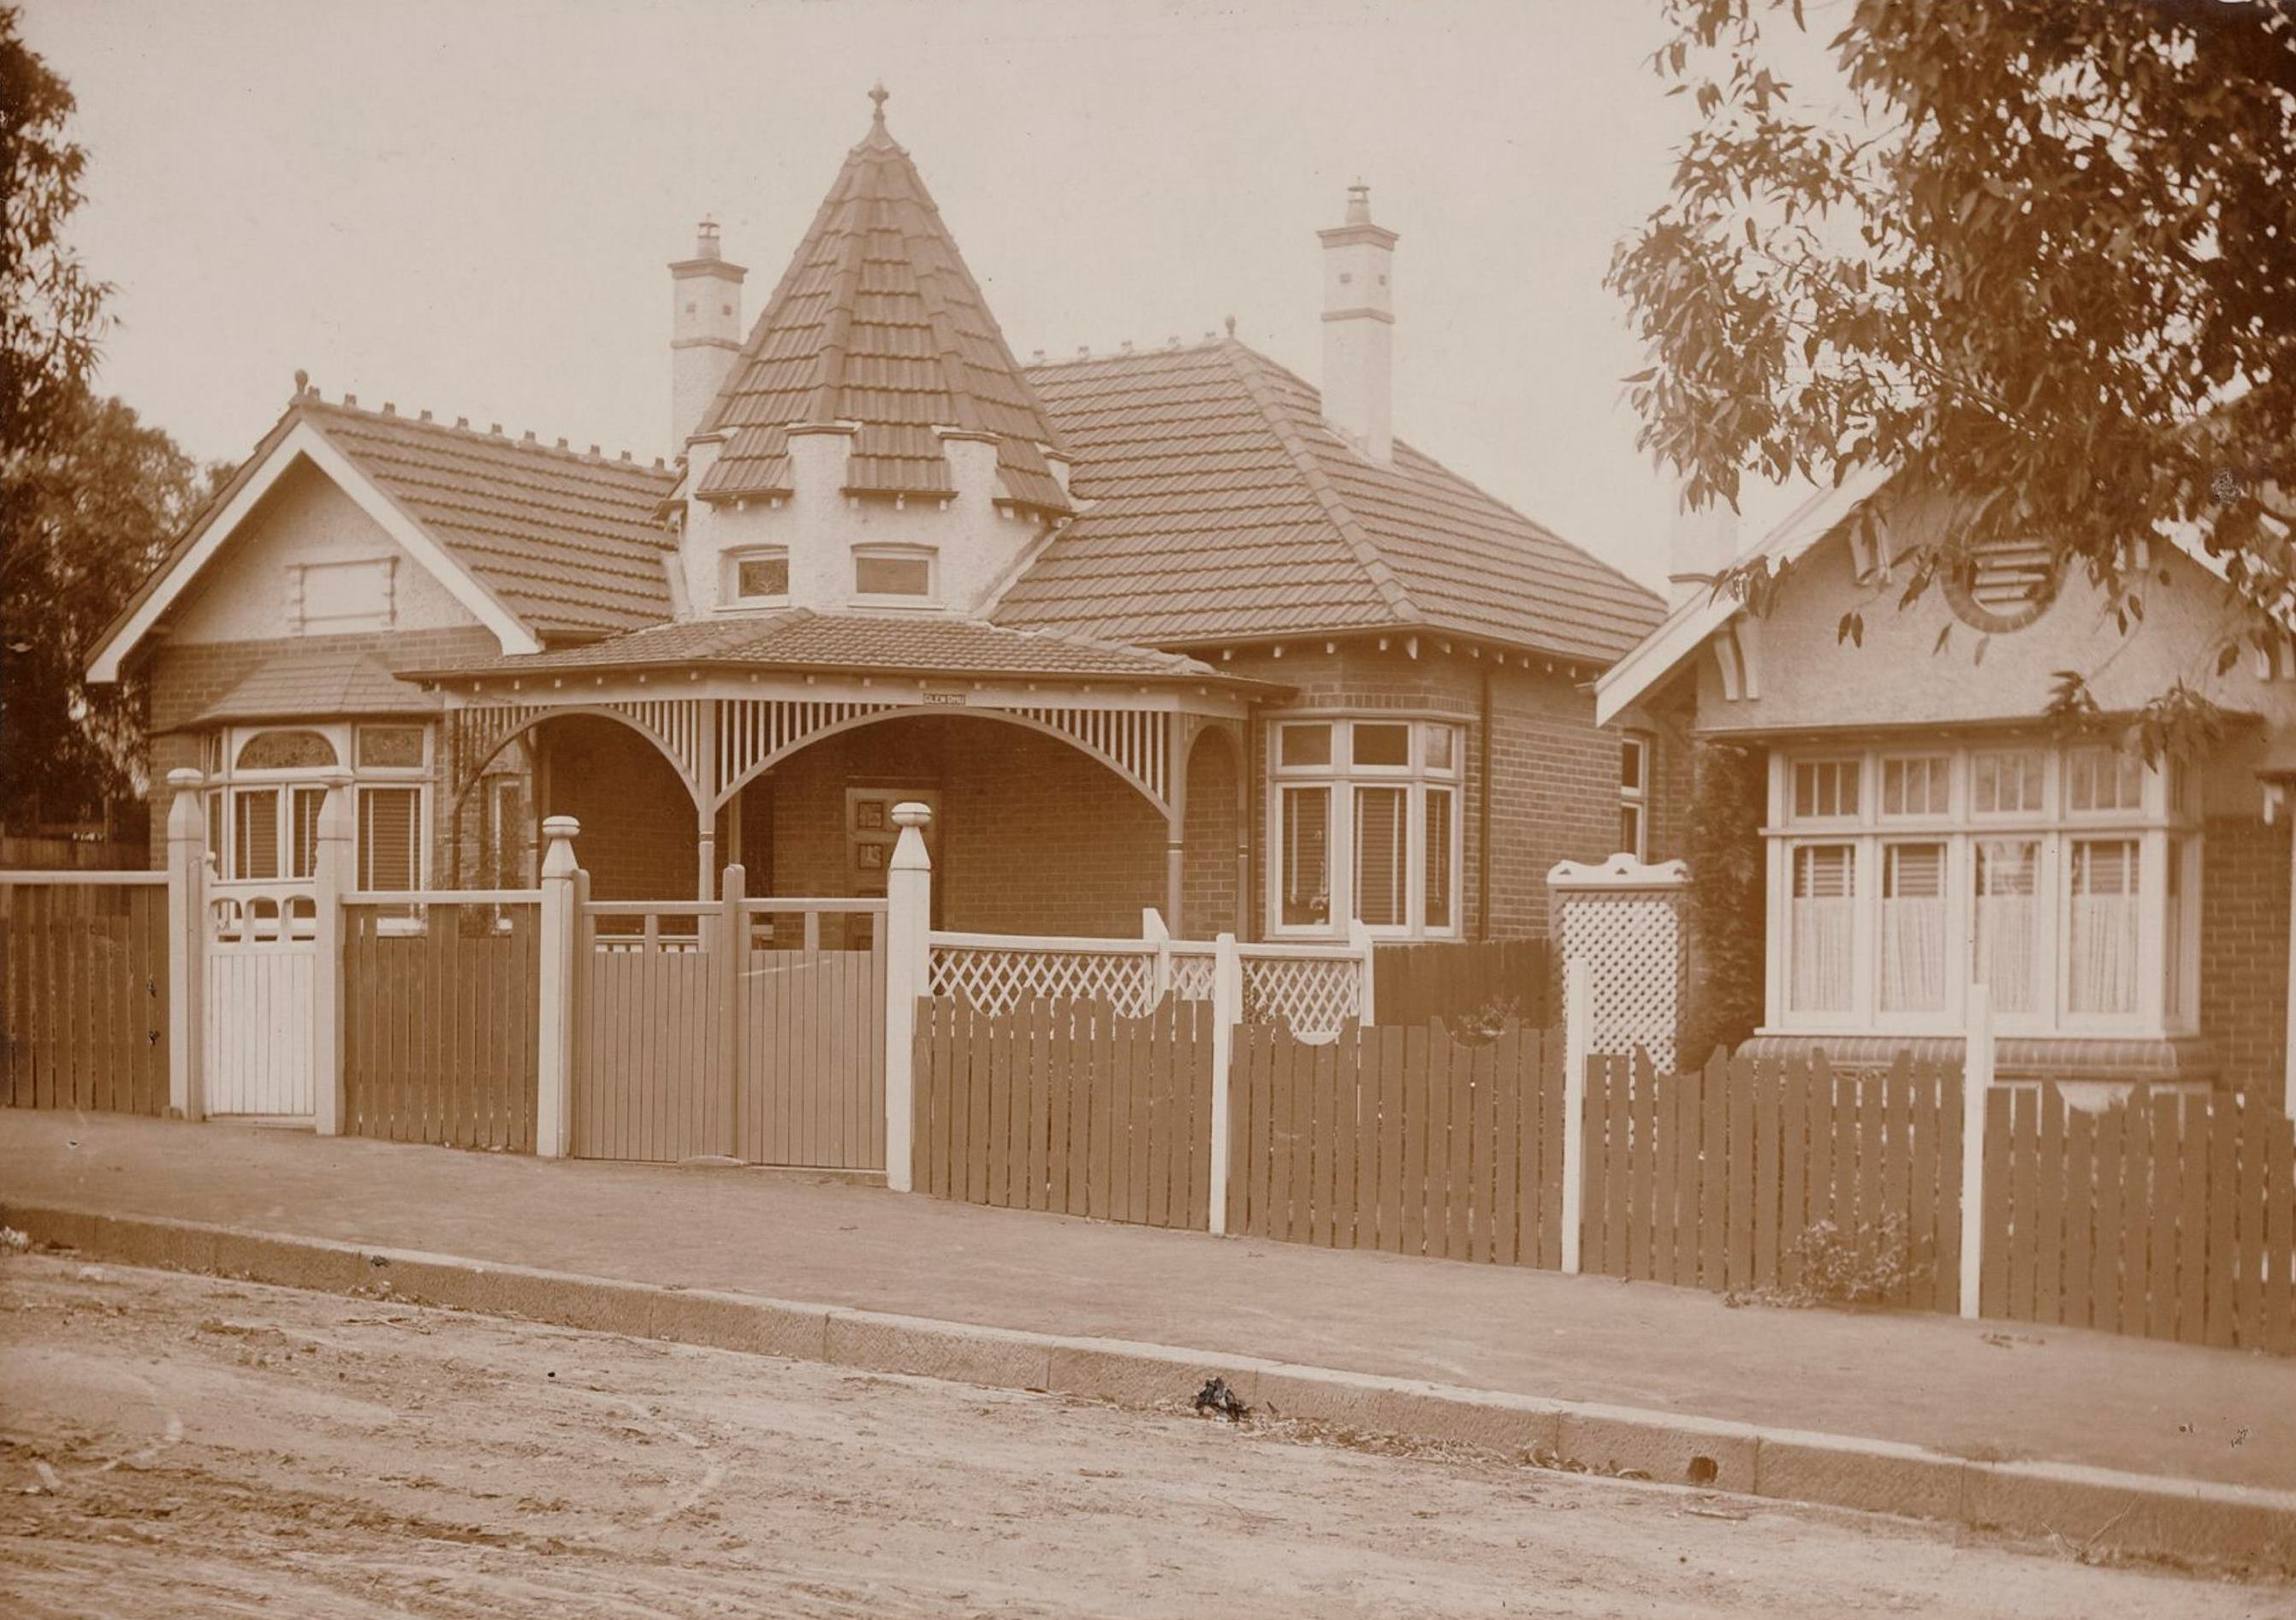 Glen Dhu, 11 Dickson Street, Haberfield, N.S.W. around 1913 / photographer unknown